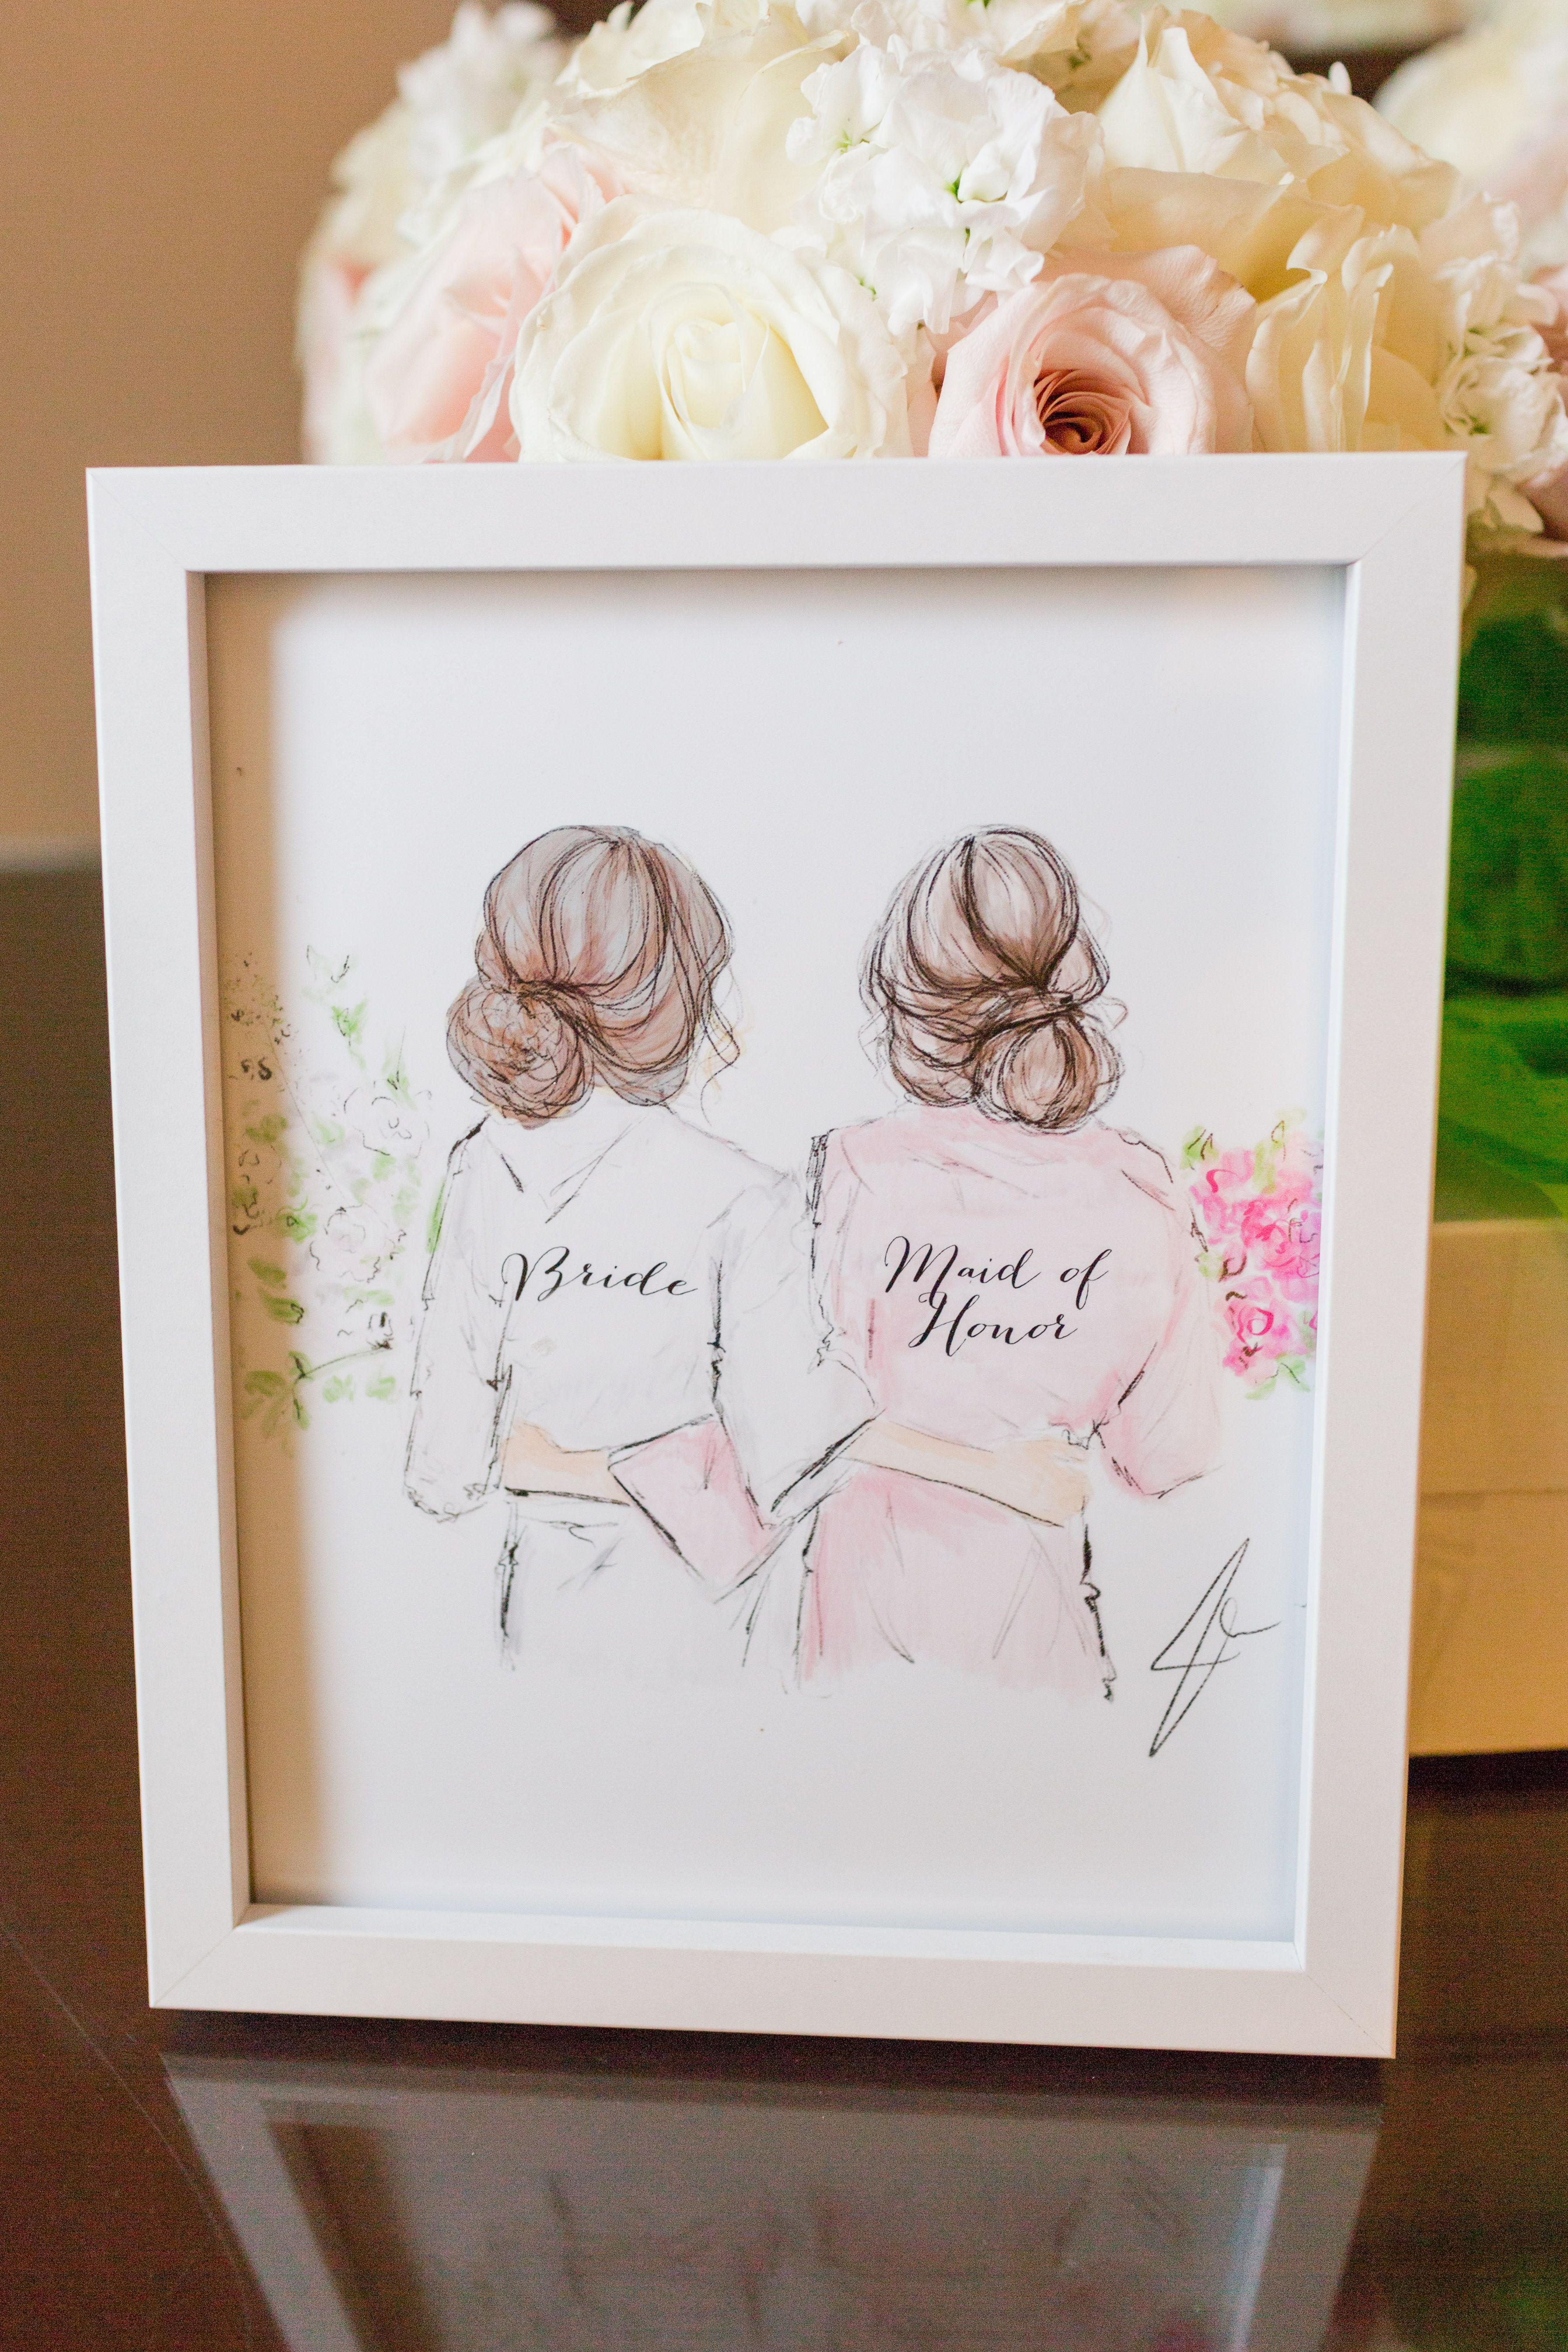 Bride Maid Of Honor Watercolor Gift Sister Wedding Gift Wedding Gifts For Bridesmaids Bridesmaid Presents